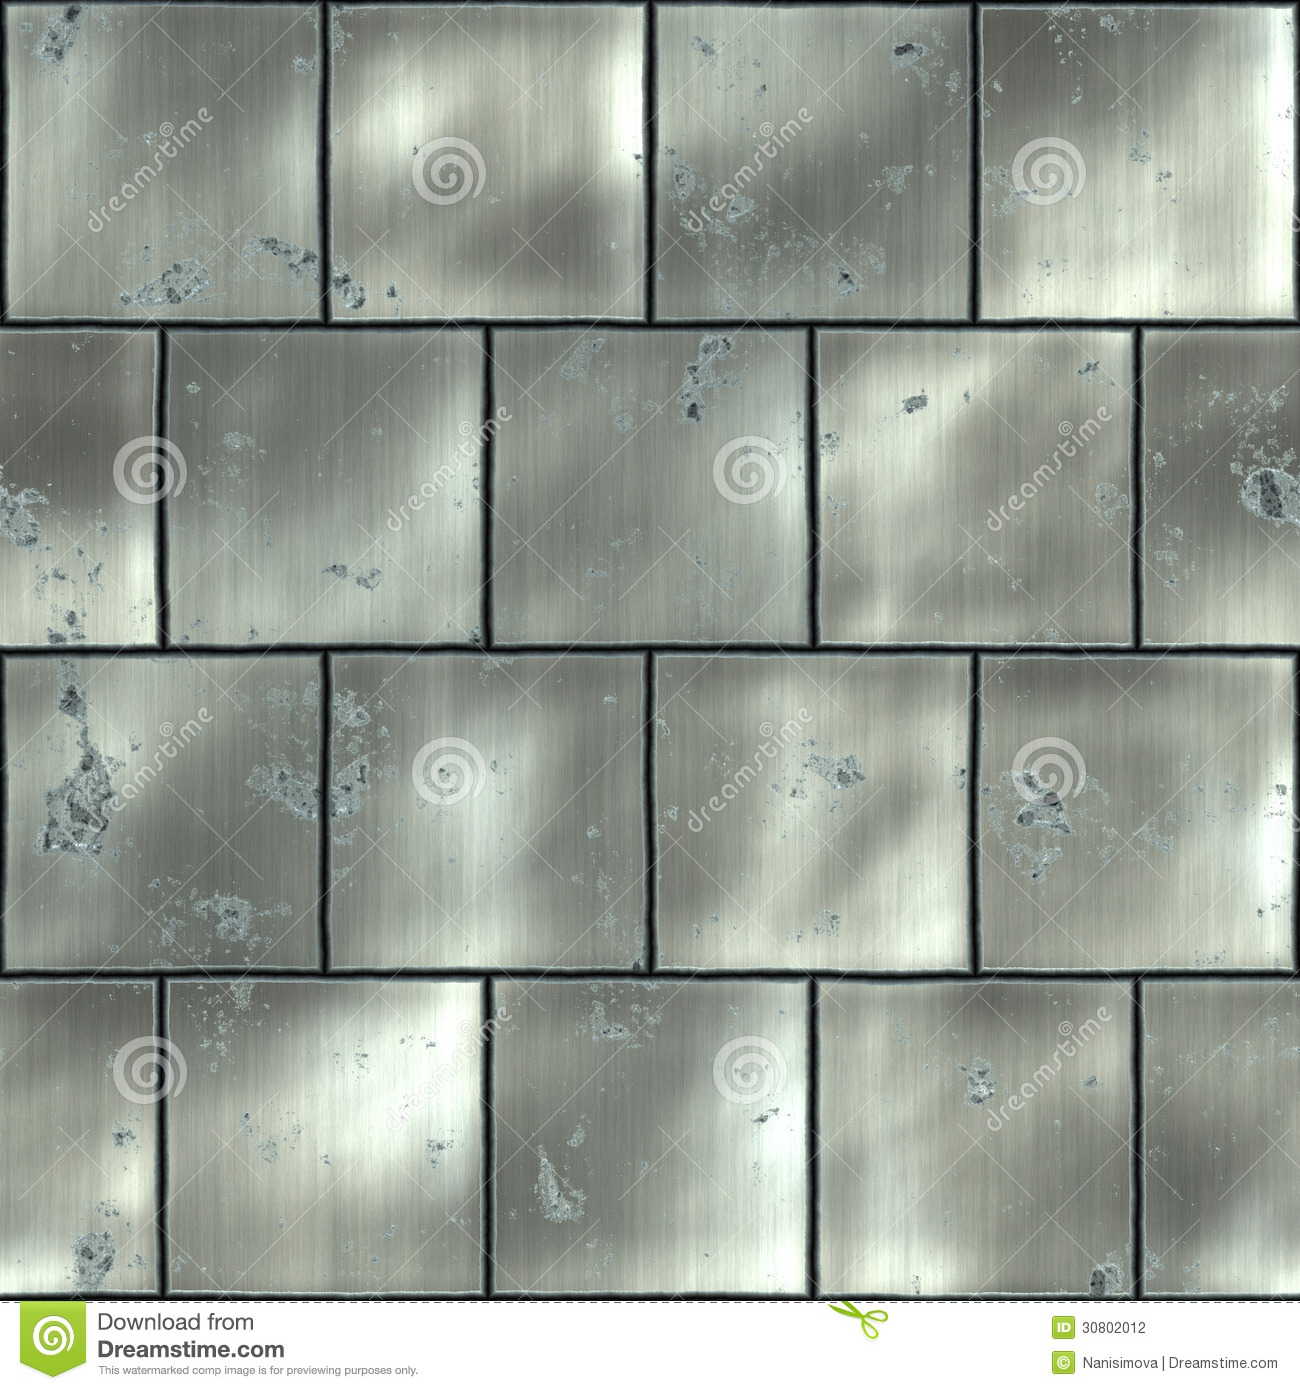 Metal Panels On Industrial Door Or Wall Stock Photo, Picture And ...